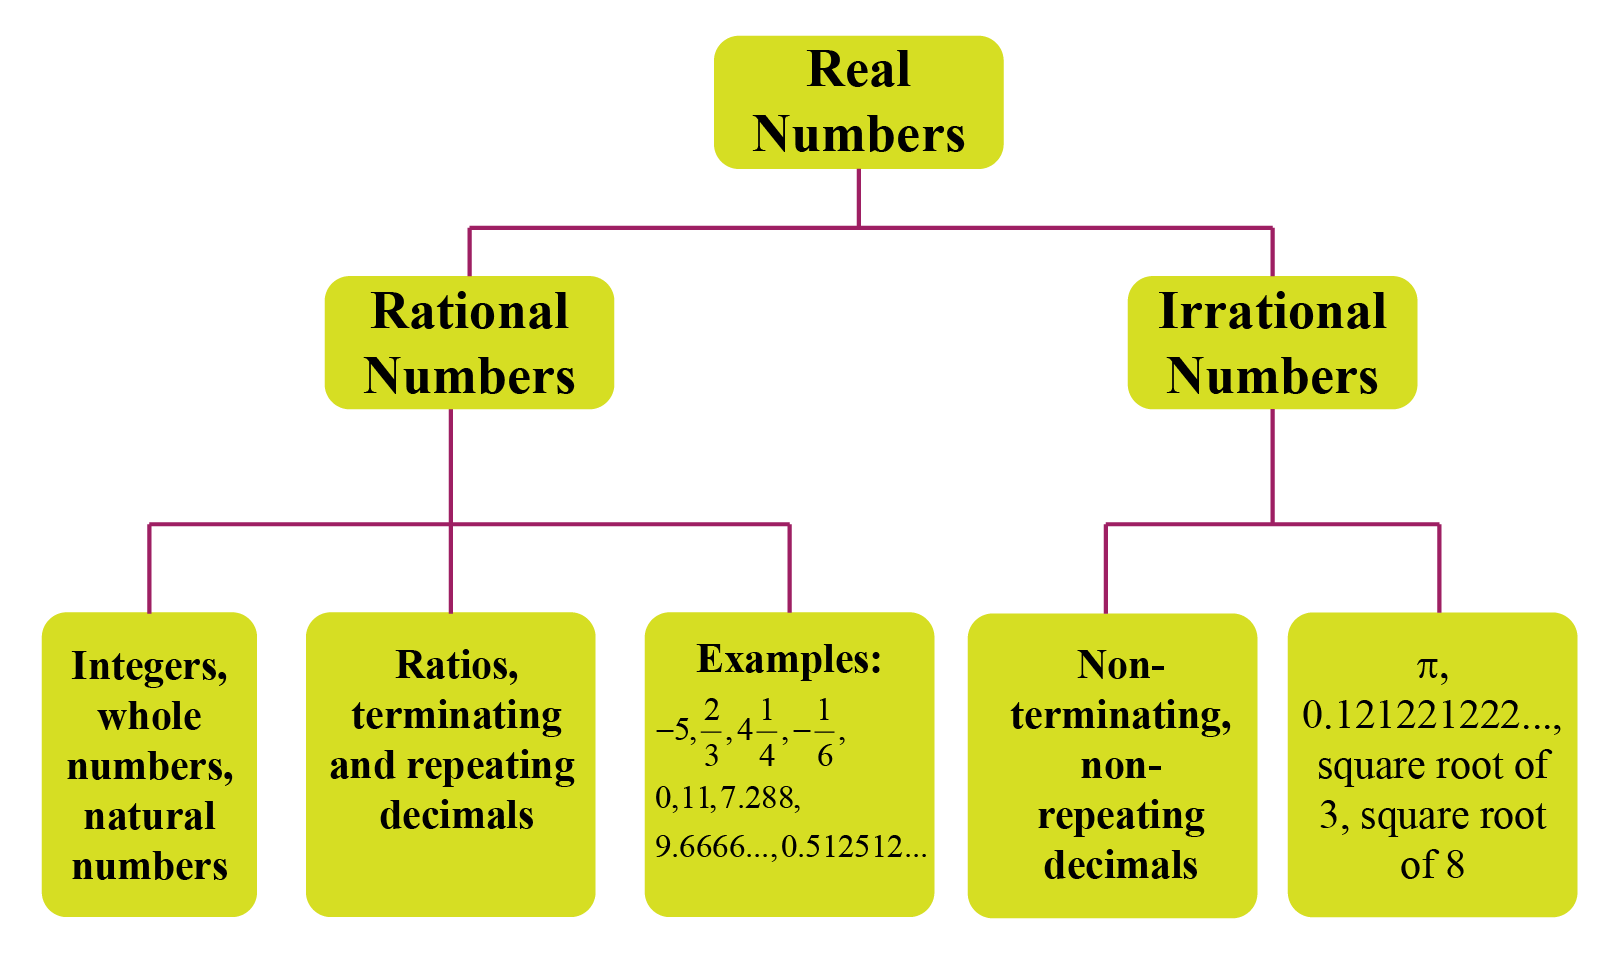 Flow chart for classification of real numbers